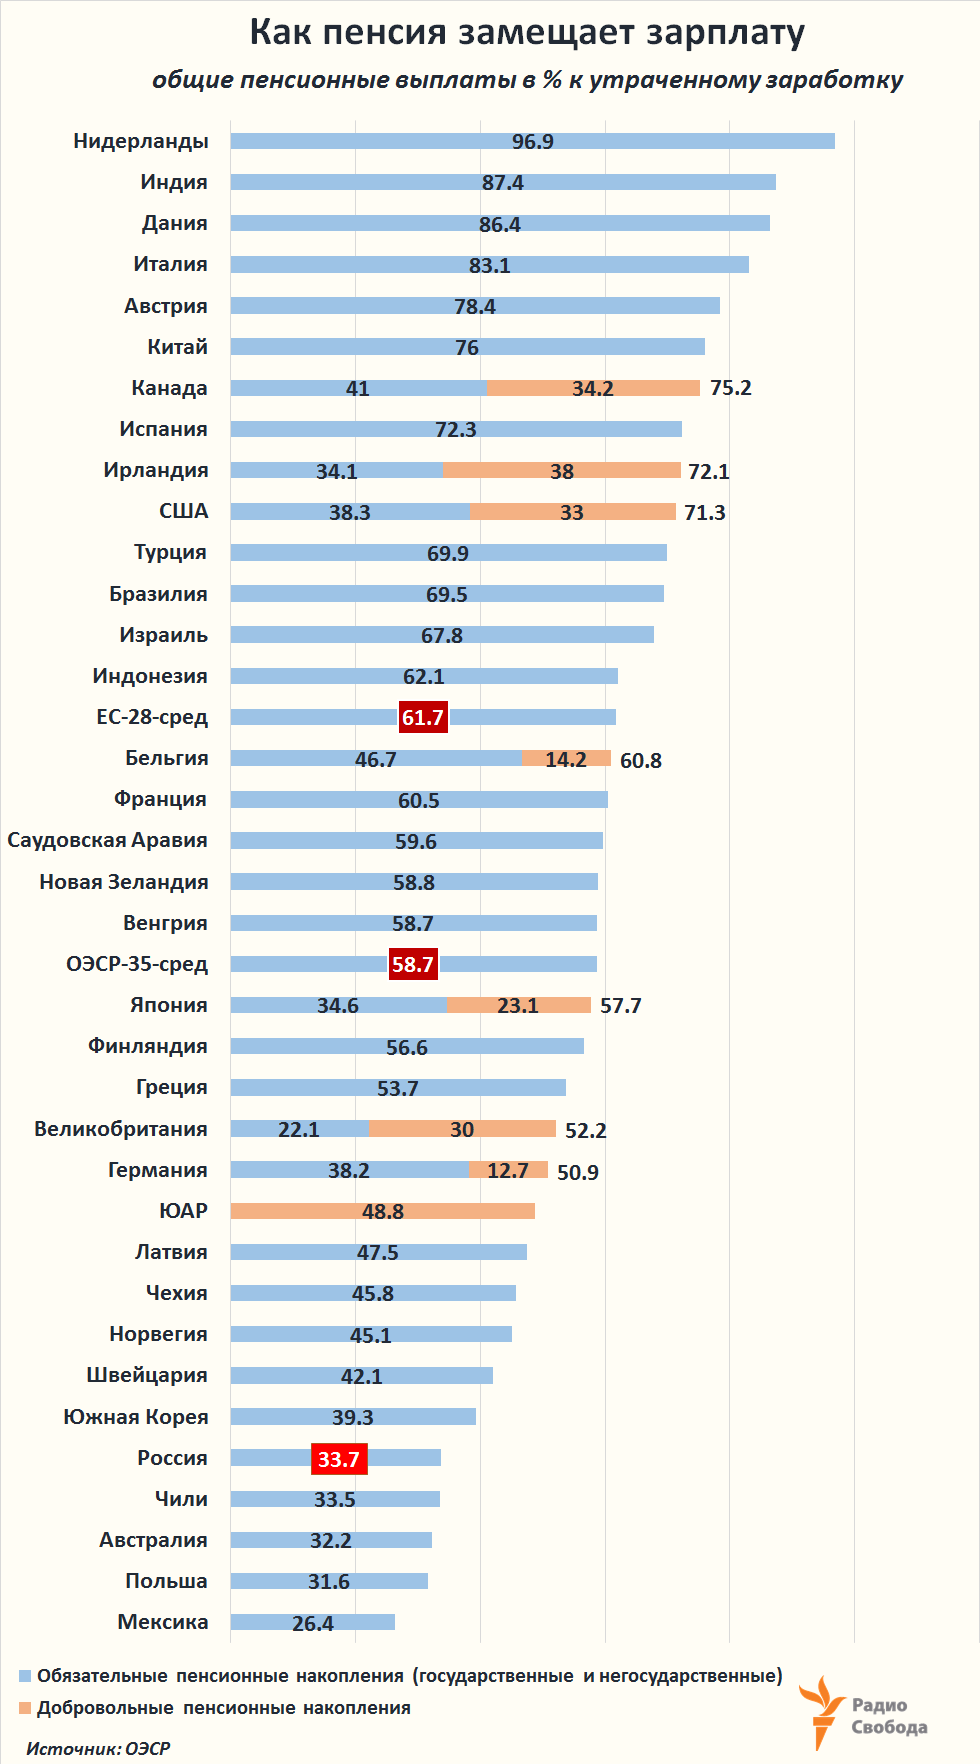 Russia-Factograph-Pensions-Replacement-OECD-Russia-2017